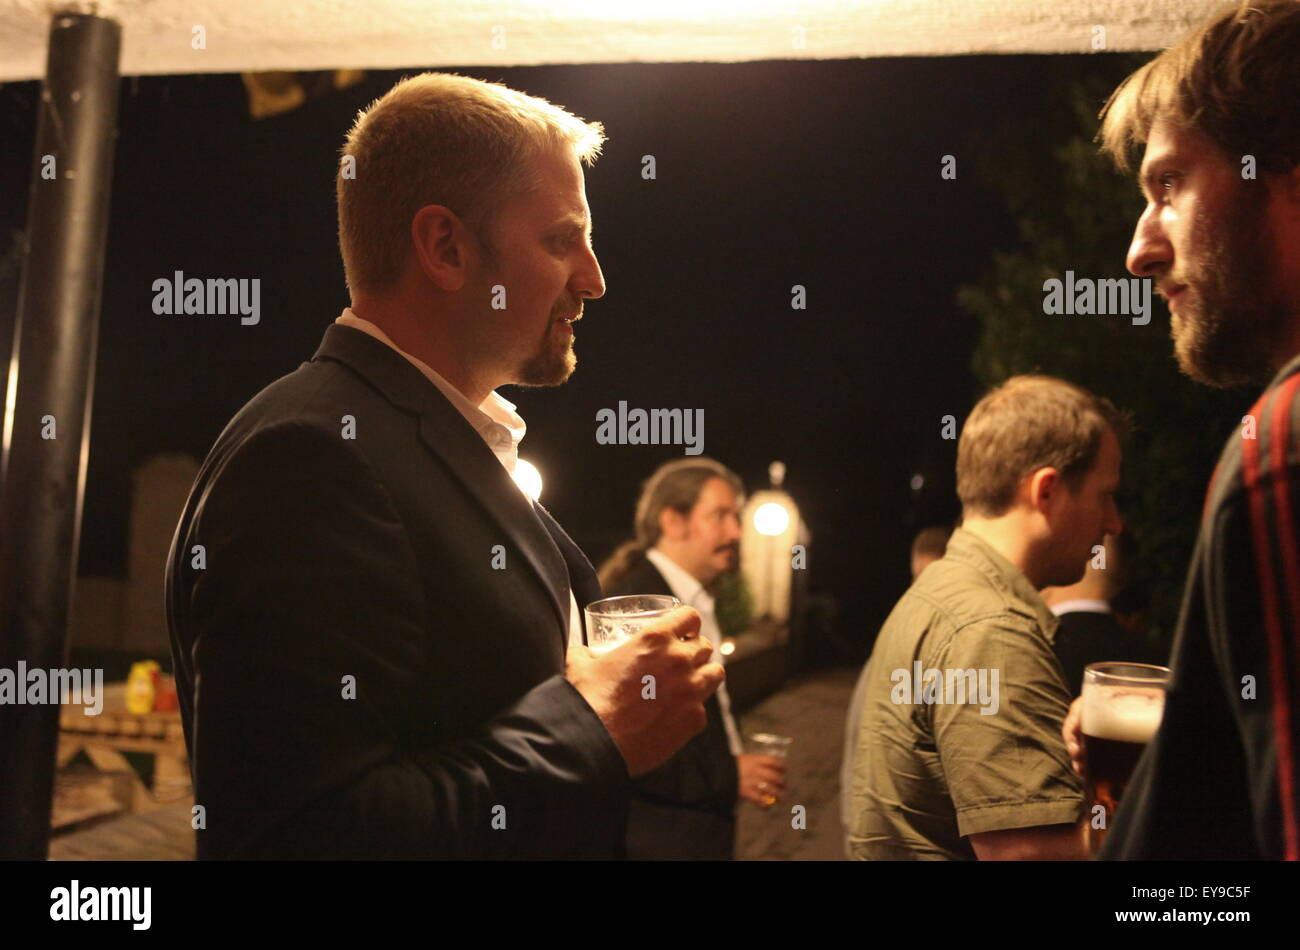 Party at the LSA (Liberland Settlement Association) house with Liberland president Vit Jedlicka. - Stock Image